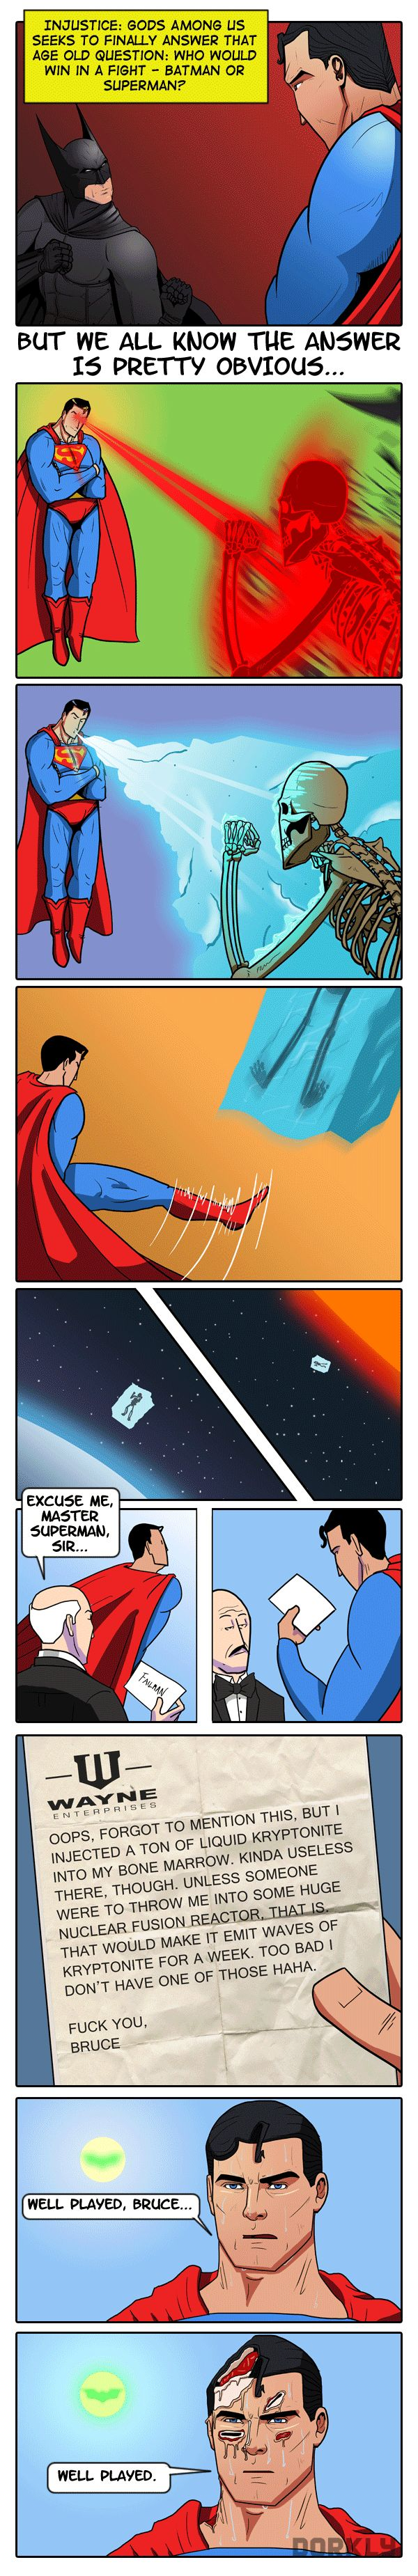 The ultimate question of who would win the Batman v Superman fight. bahahaha